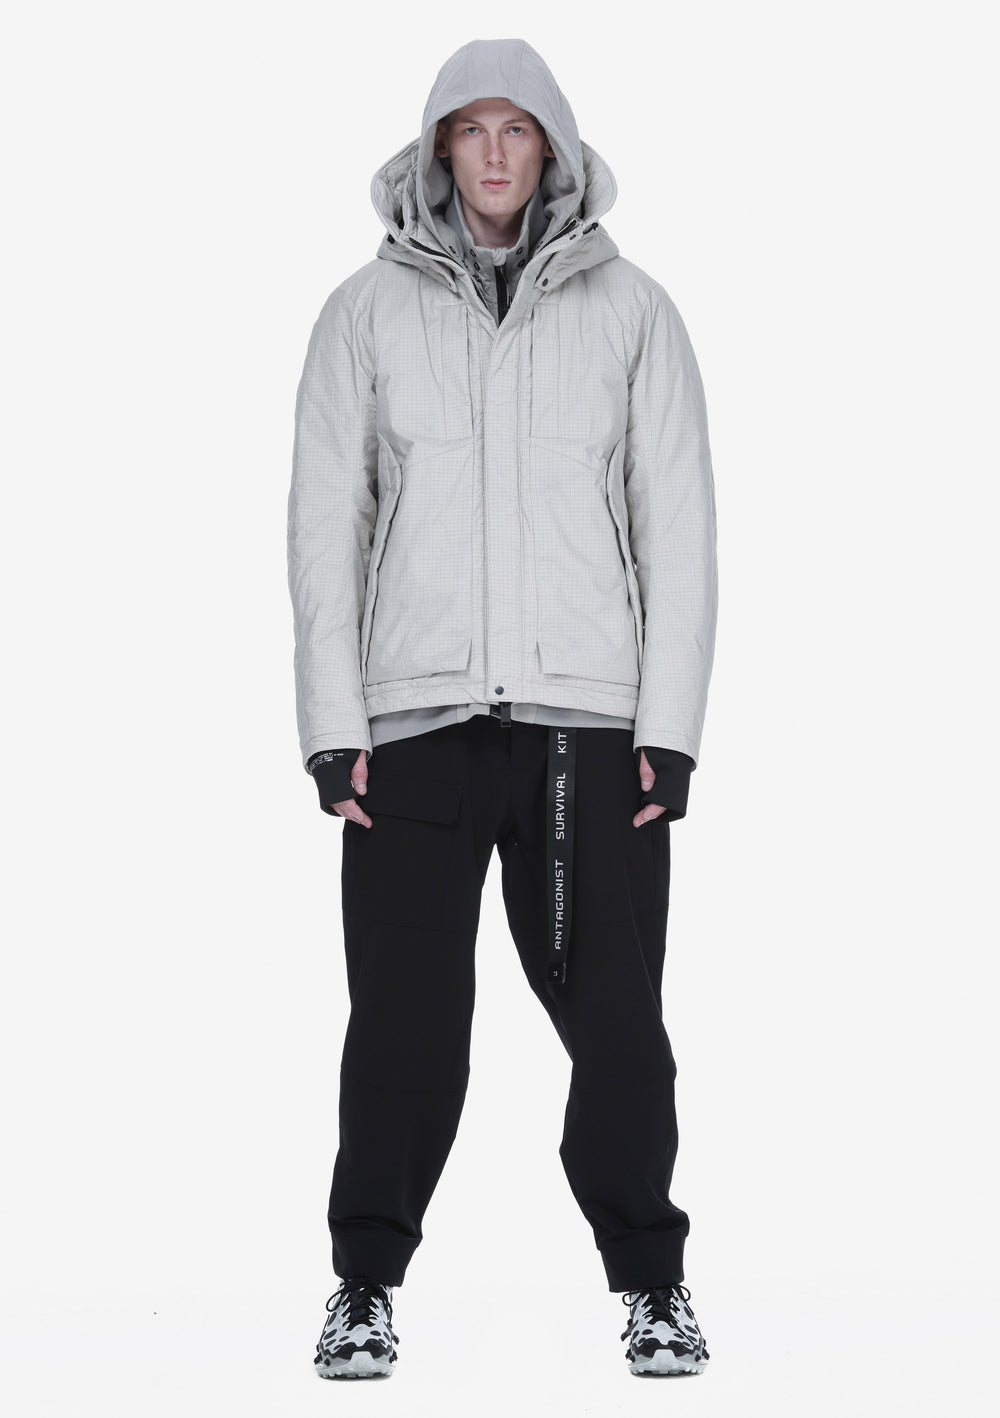 Removable Hood Padded Jacket Qm274-3 LARSEN